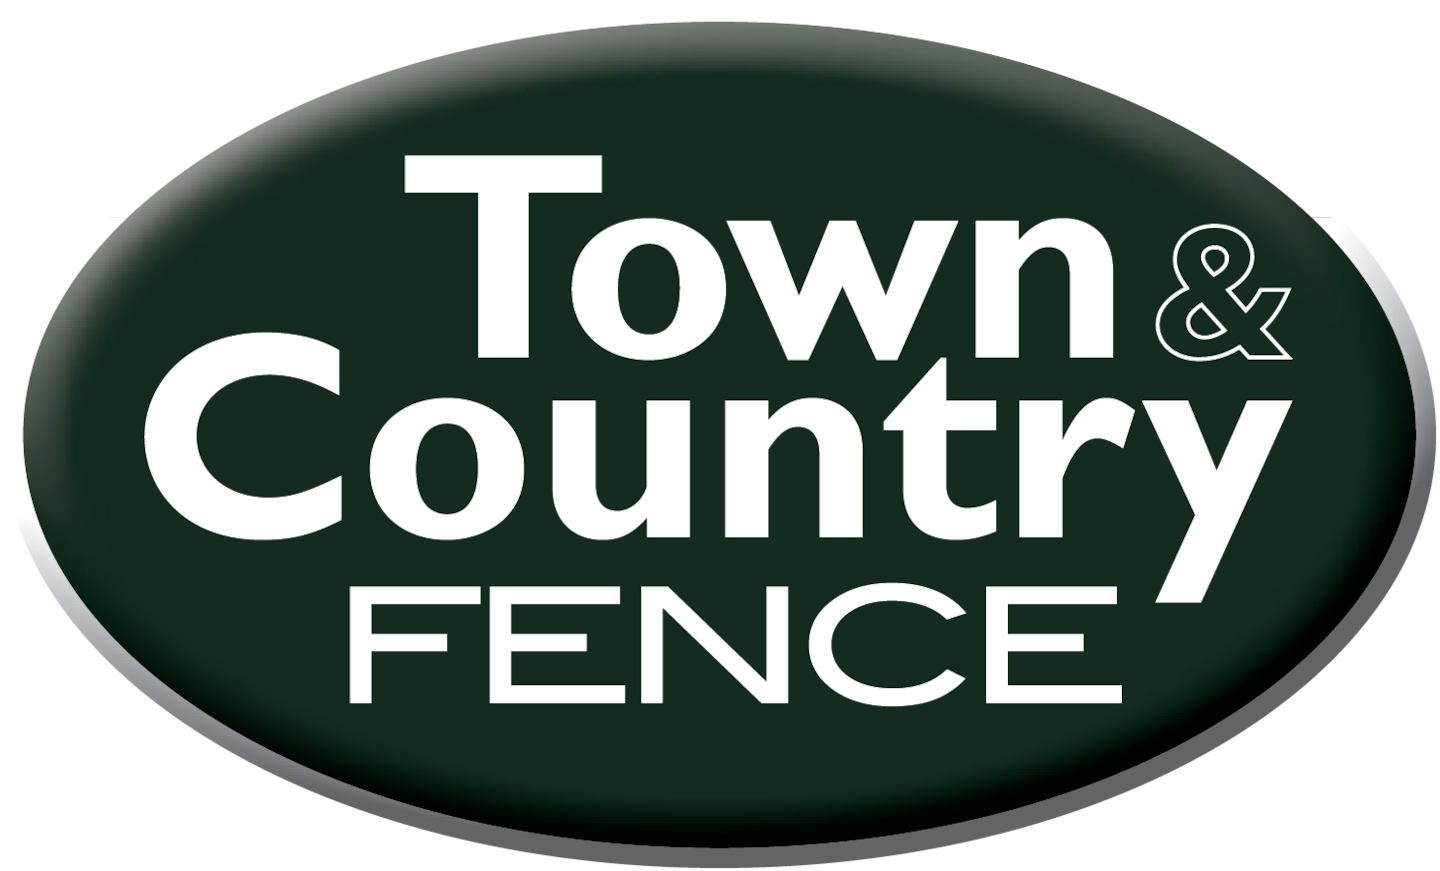 TOWN & COUNTRY FENCE